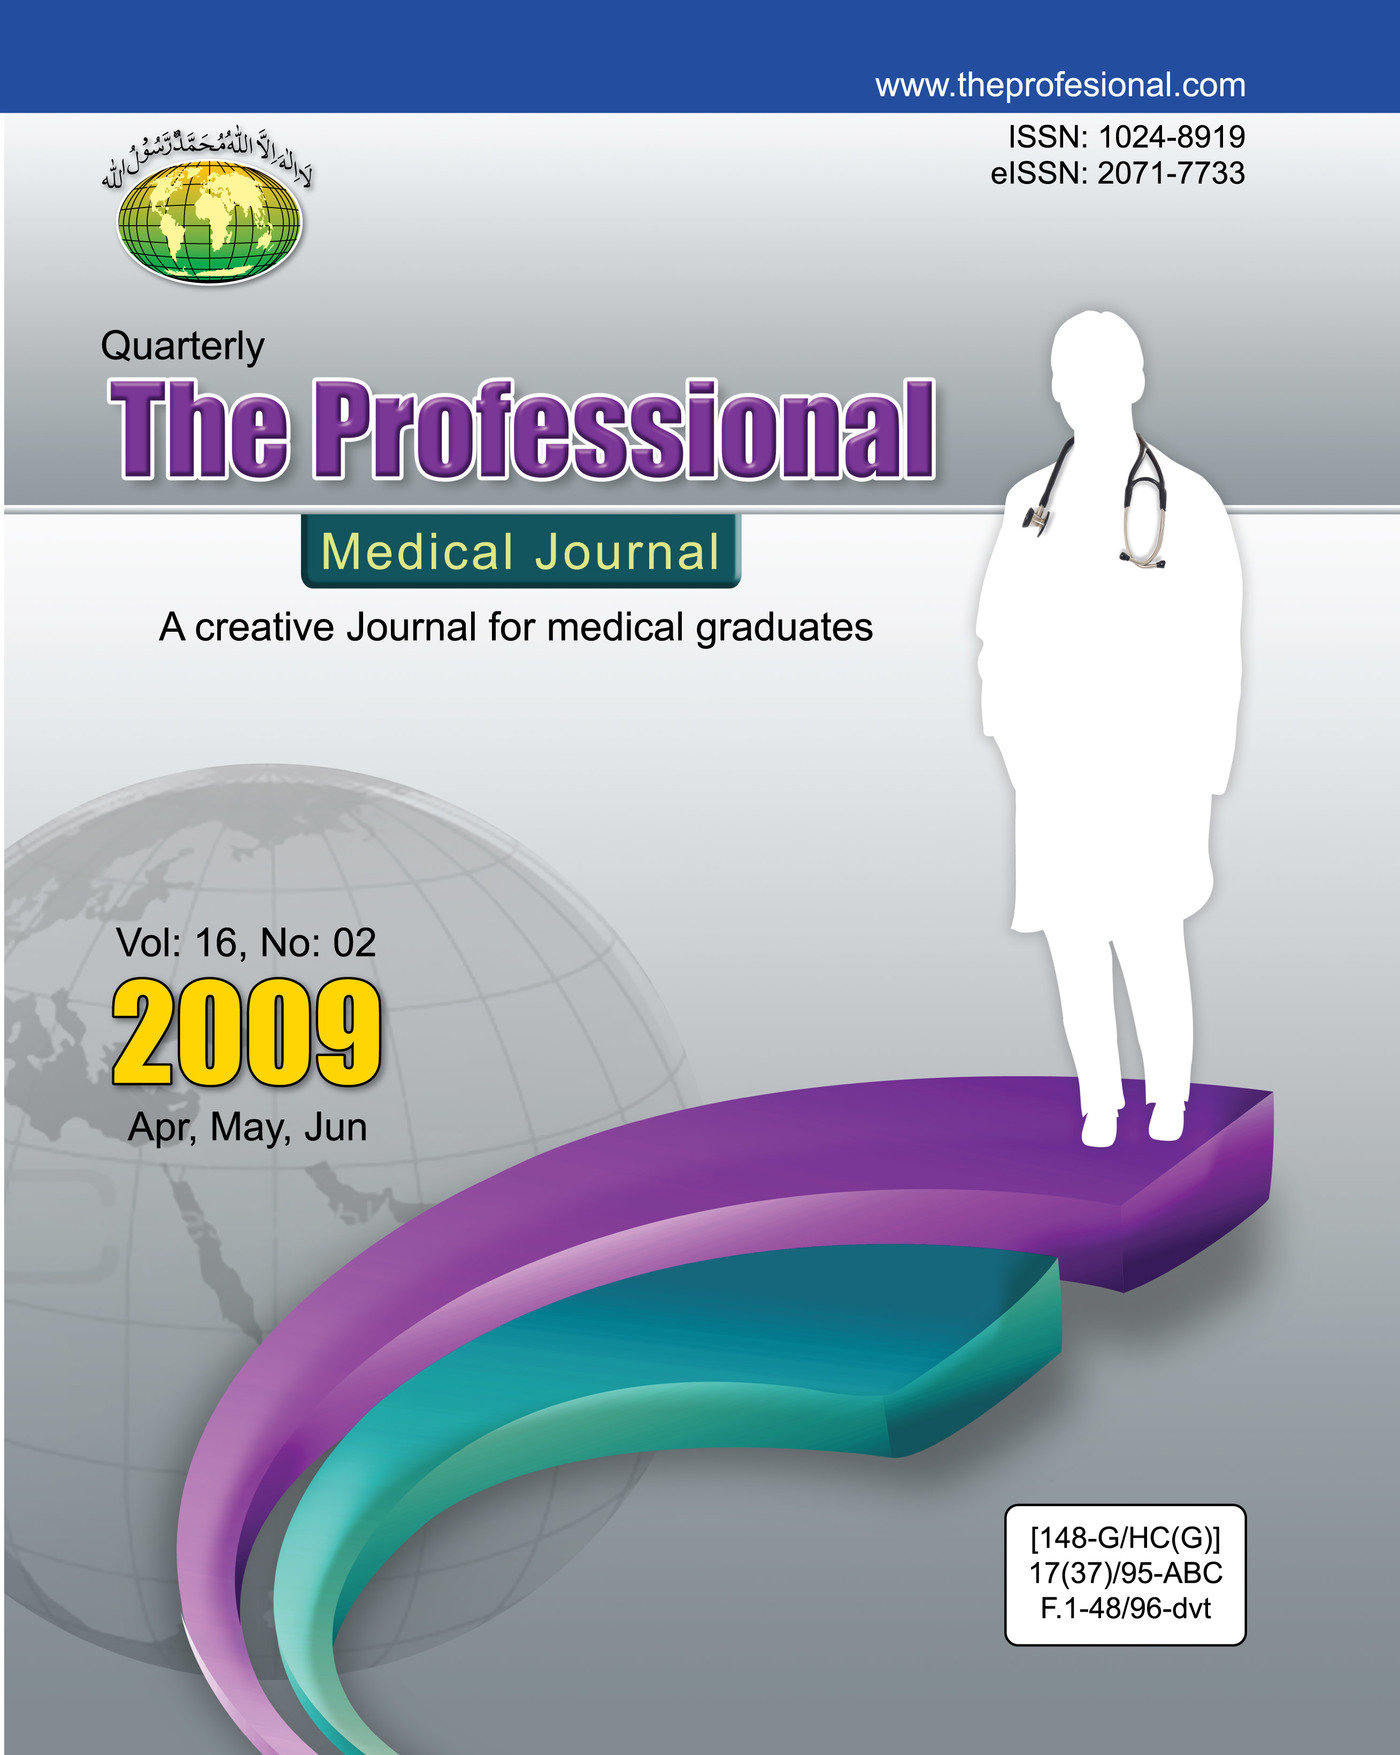 journal cover the professional medical journal this design is the cover page of quaterly published journal entitled the professional medical journal a